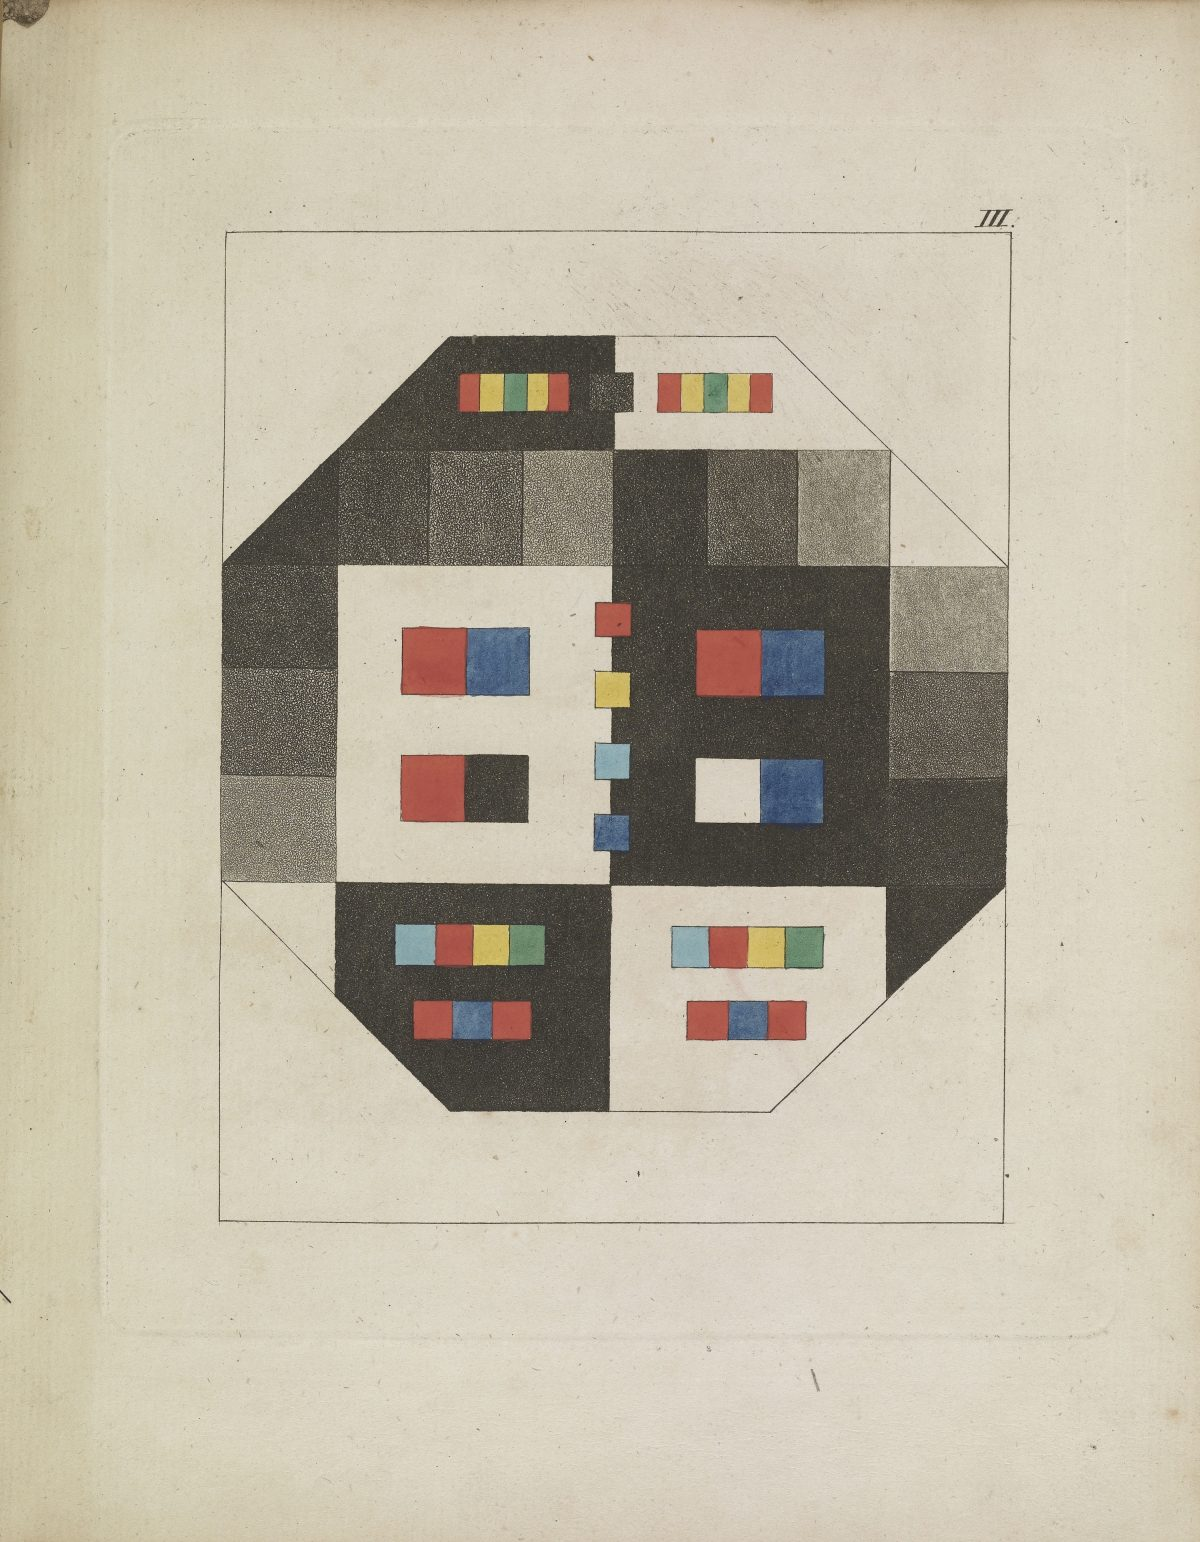 Johann Wolfgang von Goethe Zur Farbenlehre Theory of Colors